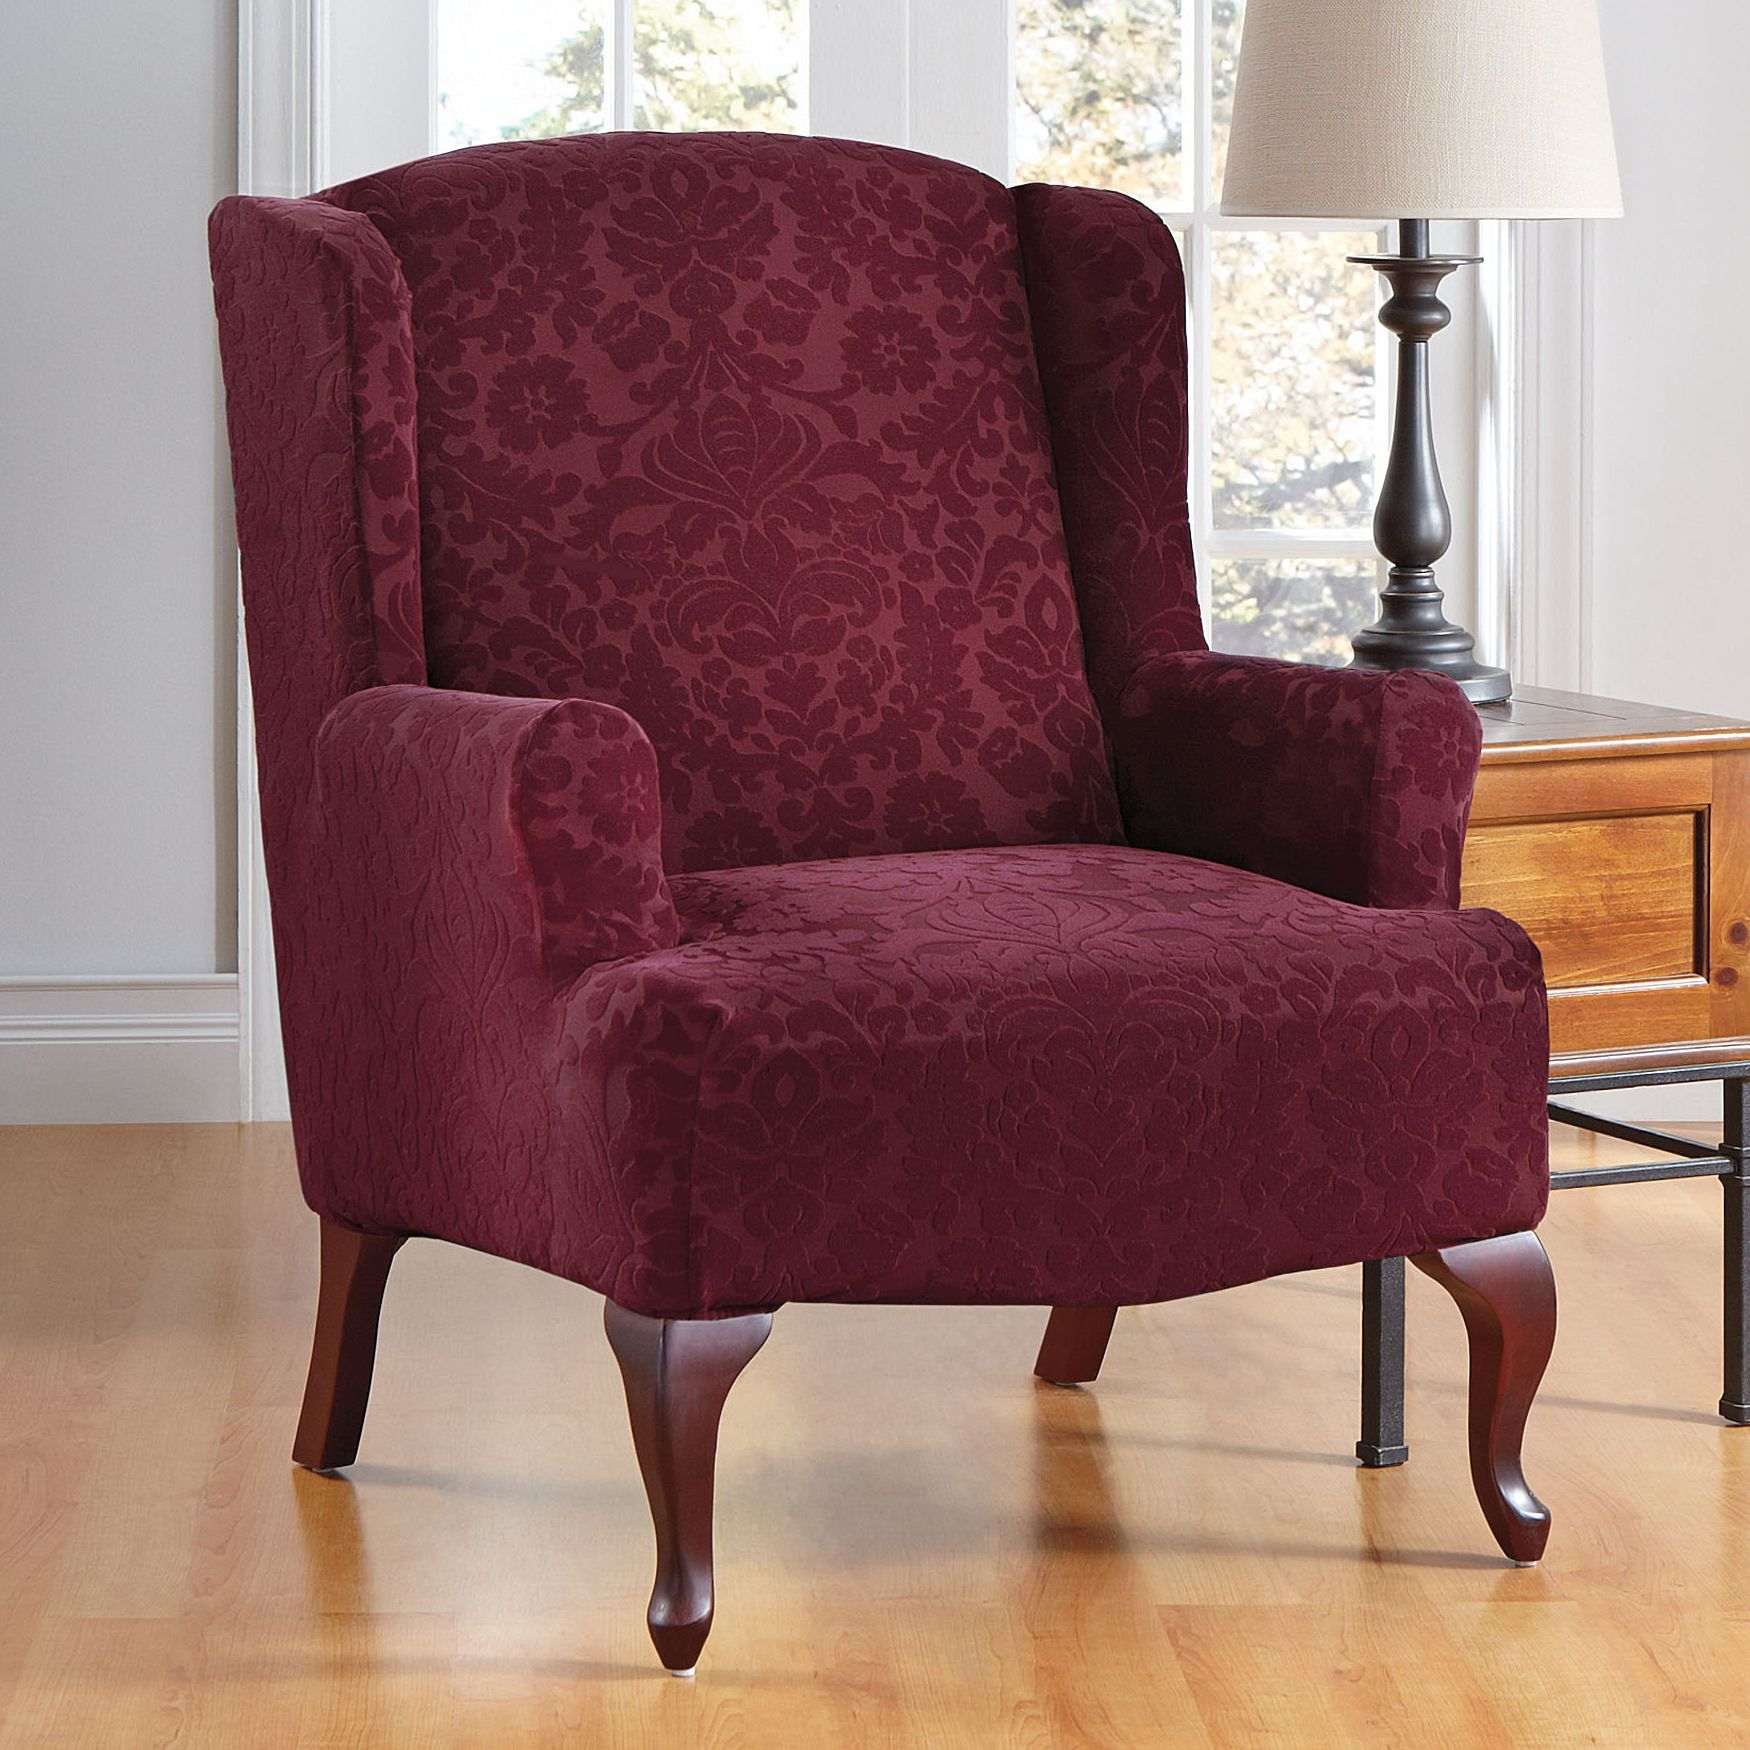 49.99 Stretch Damask Wing Chair Slipcover Slipcovers